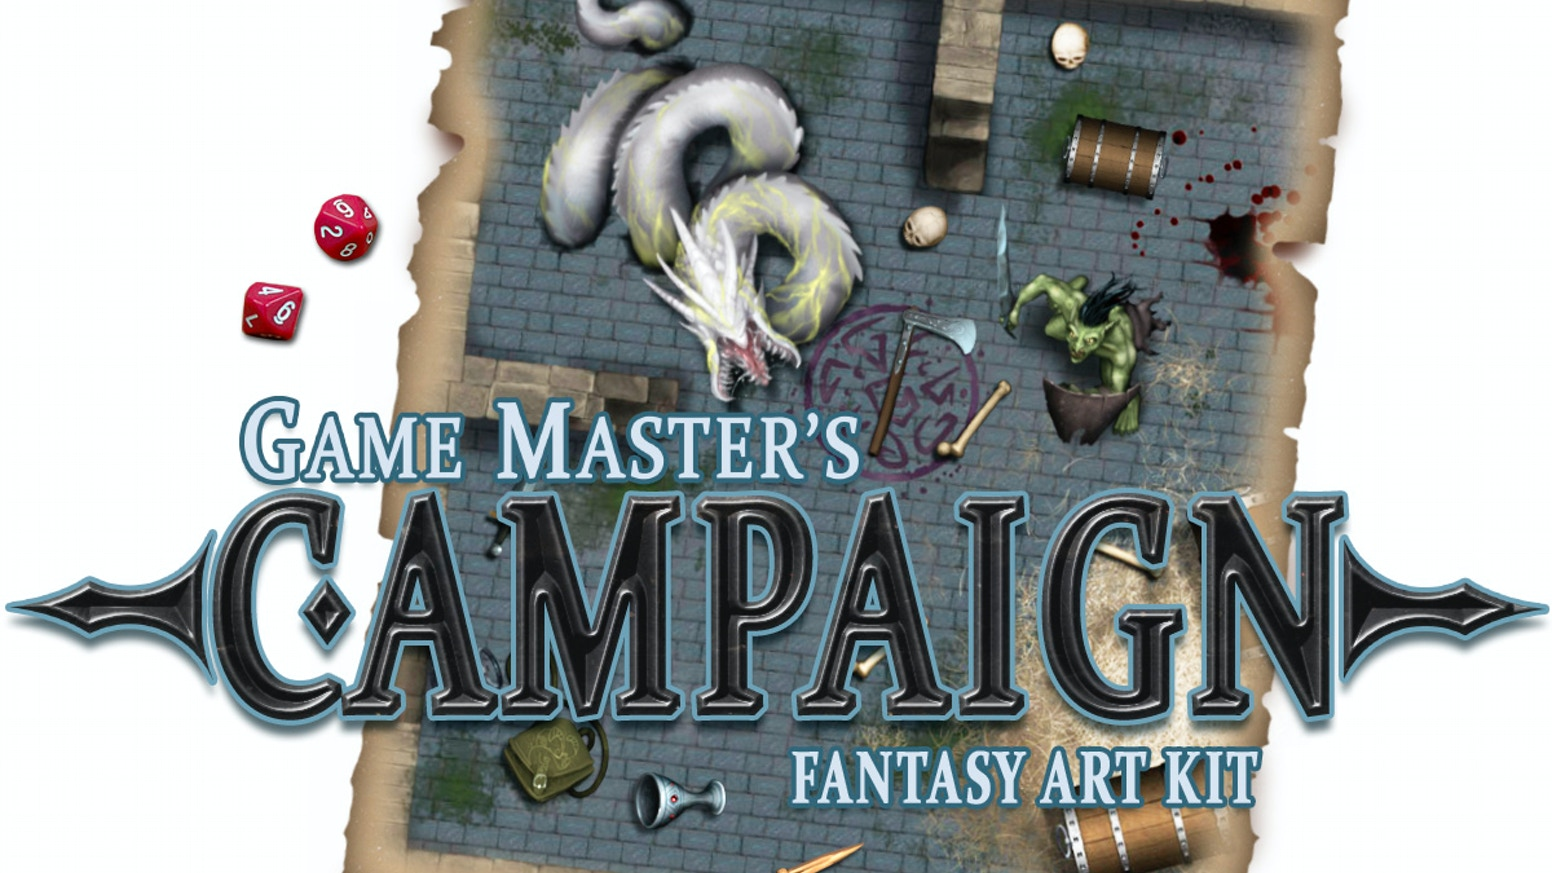 Game Master's Campaign - The Fantasy art kit by VortexGamesInc » The week  after — Kickstarter